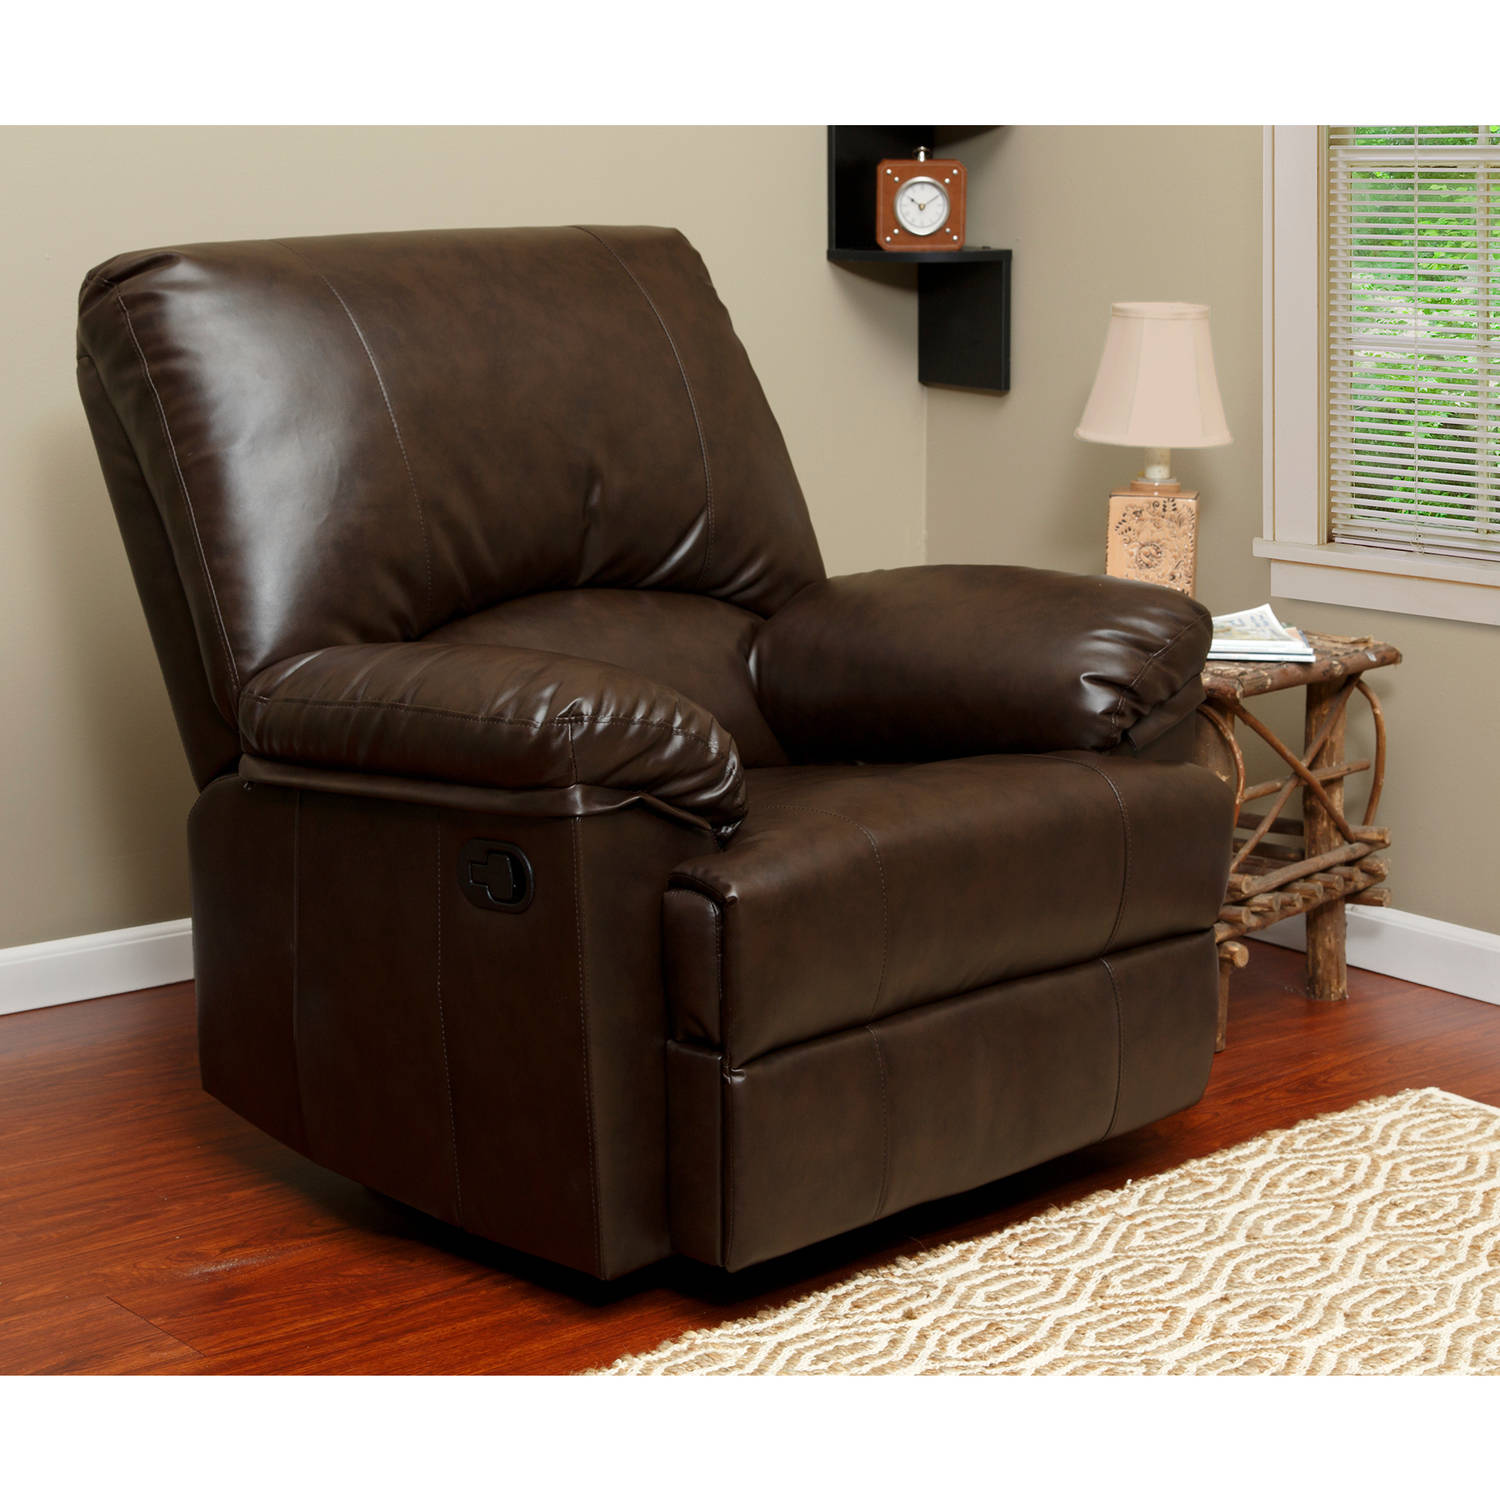 relaxzen 237000wm rocker recliner brown marbled leather - Leather Rocker Recliner